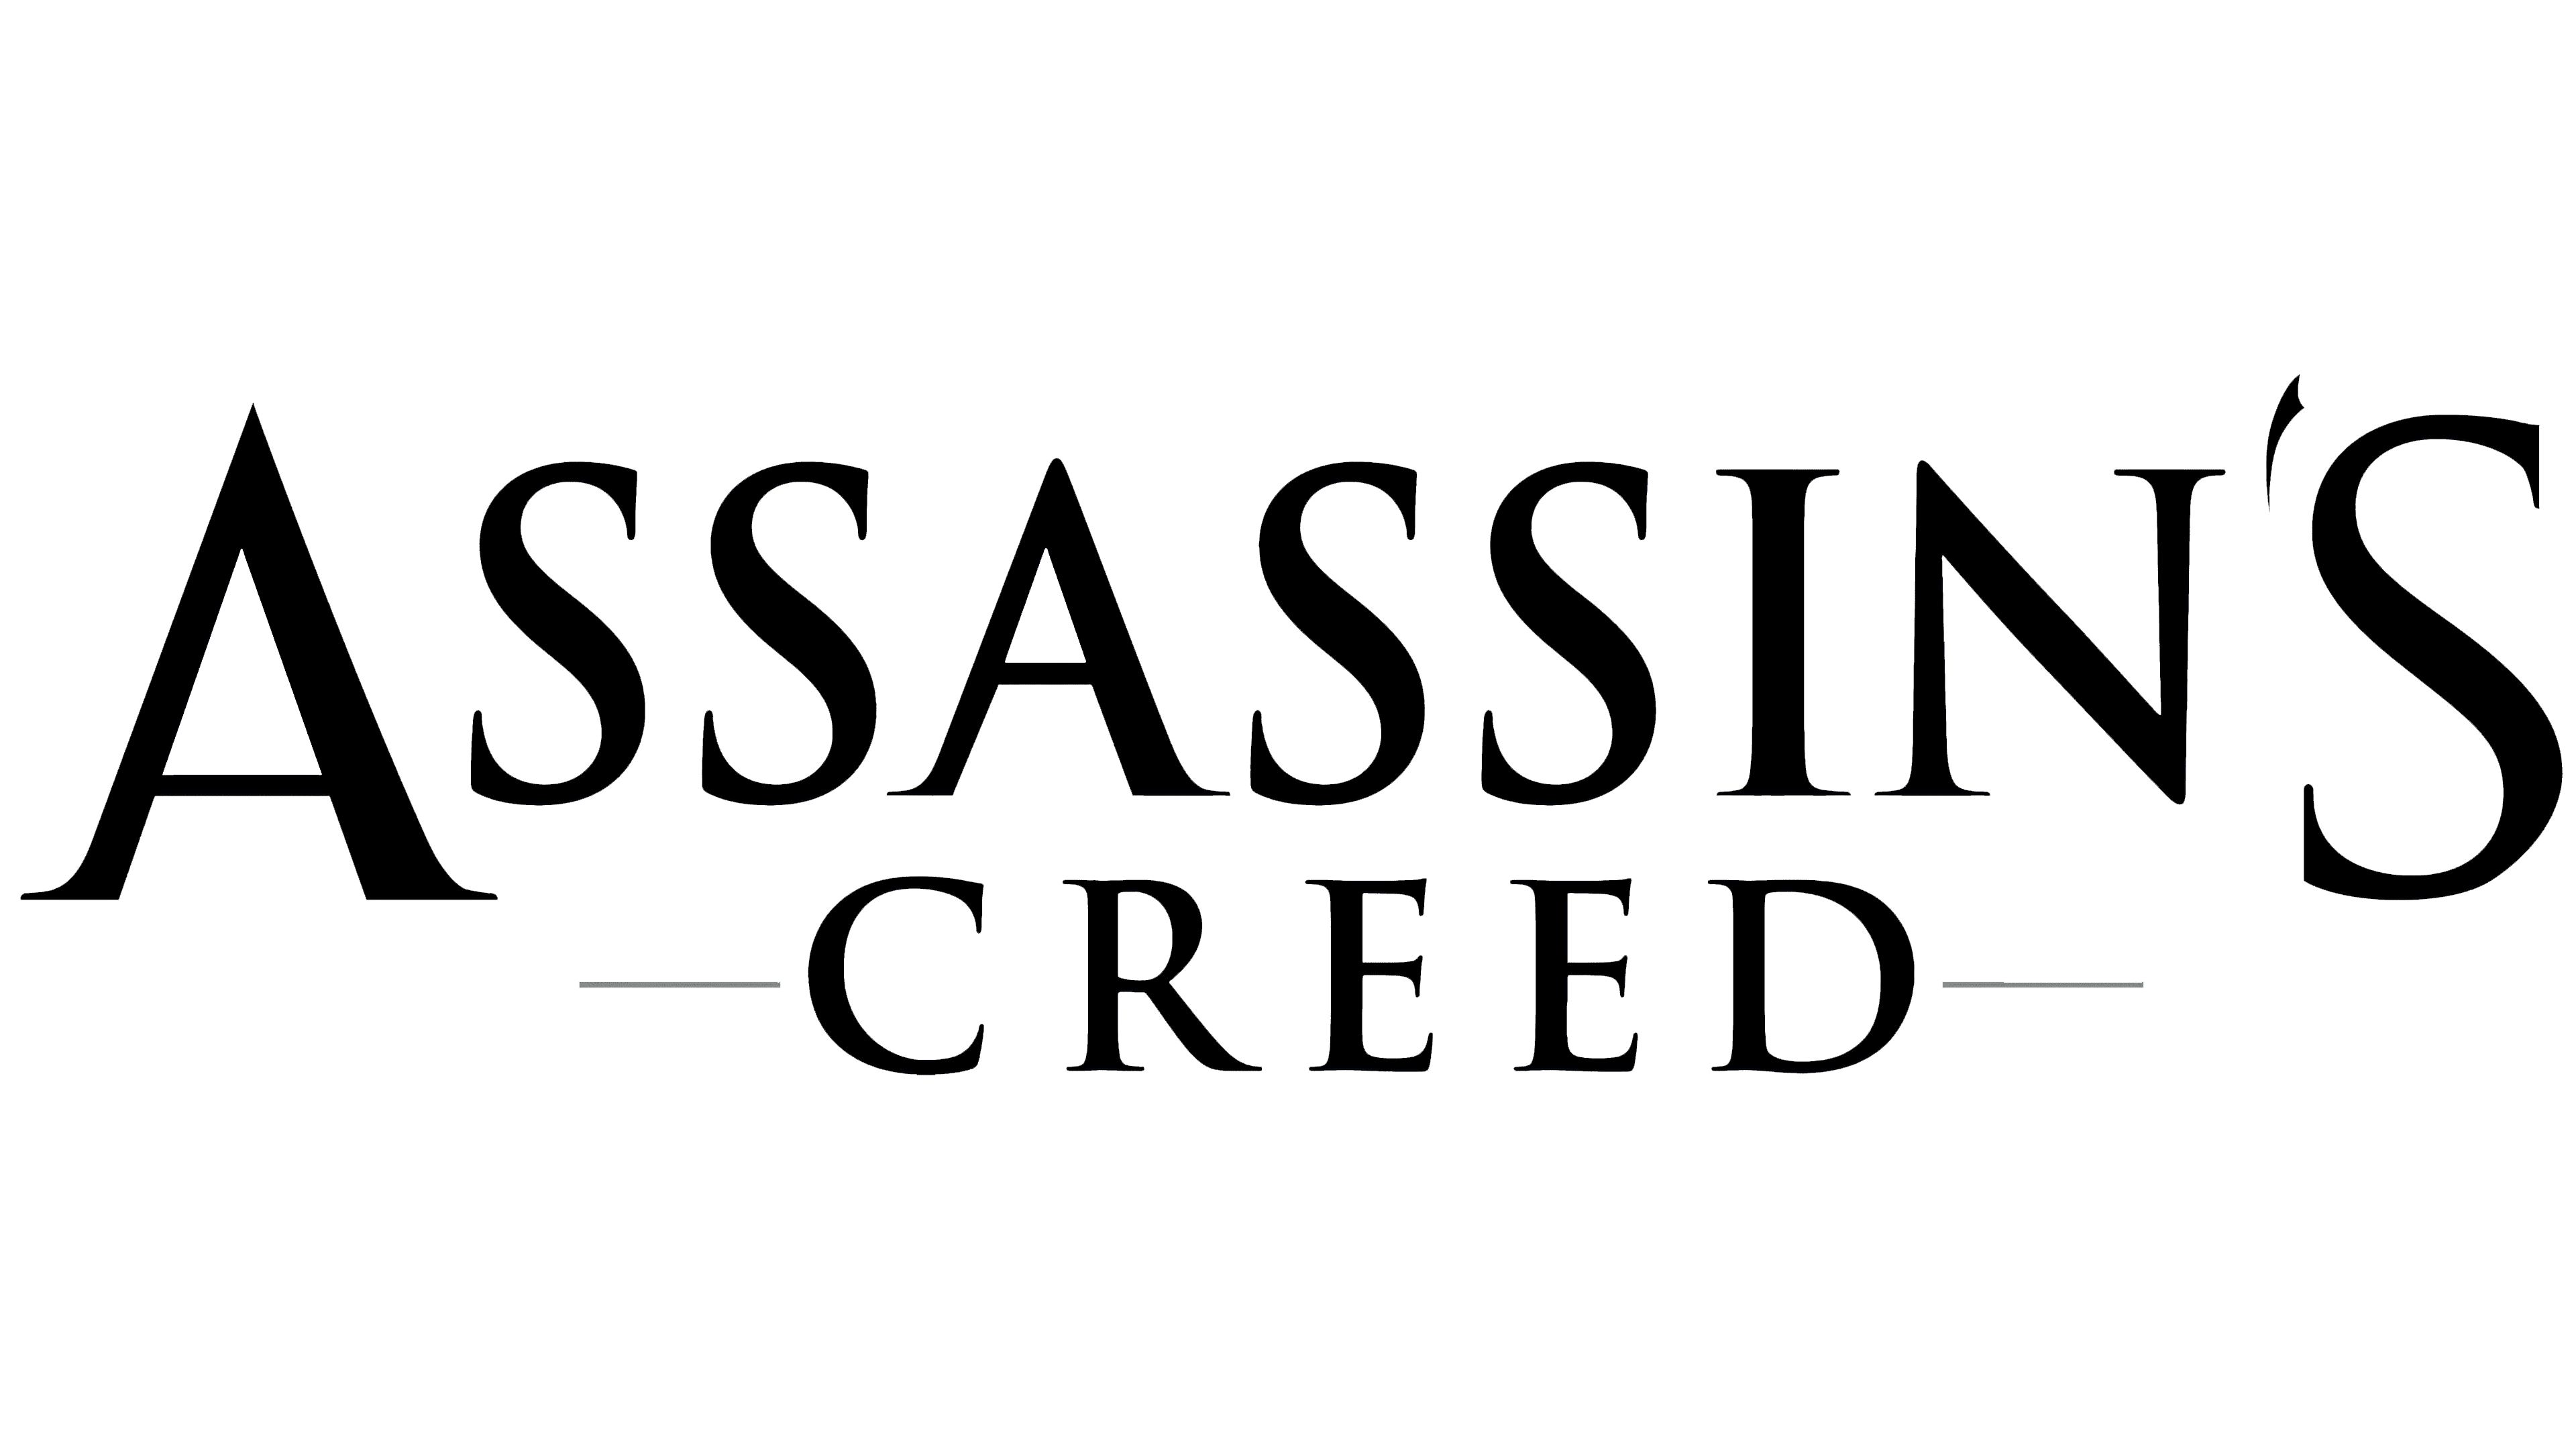 Assassin S Creed Logo The Most Famous Brands And Company Logos